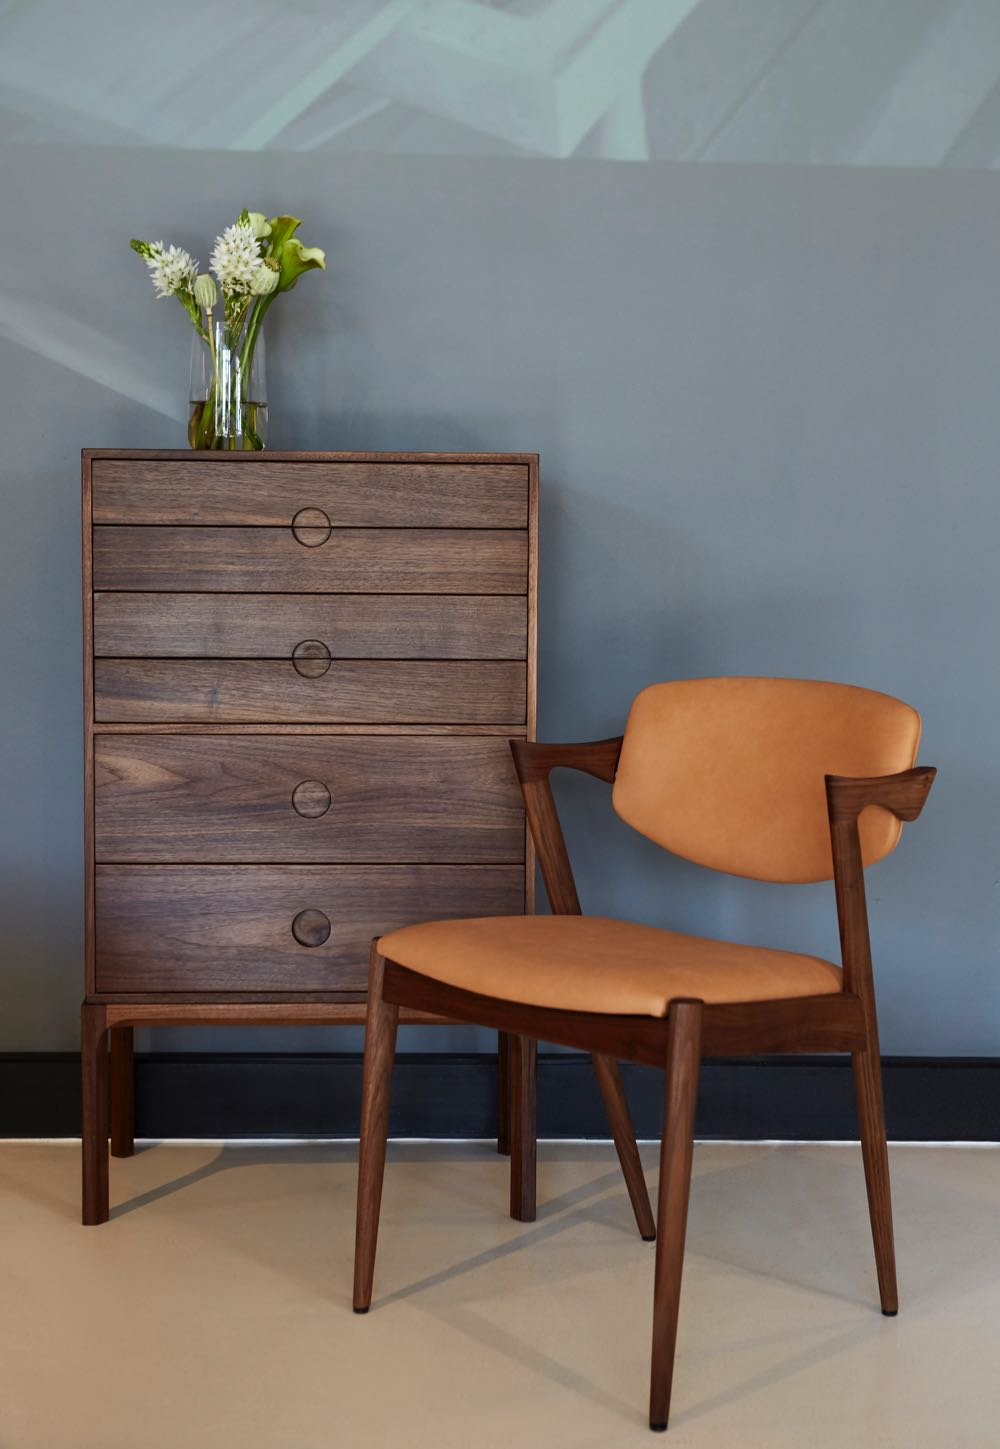 Kai Kristiansen's Entré 3B in Walnut with Model 42 chair.